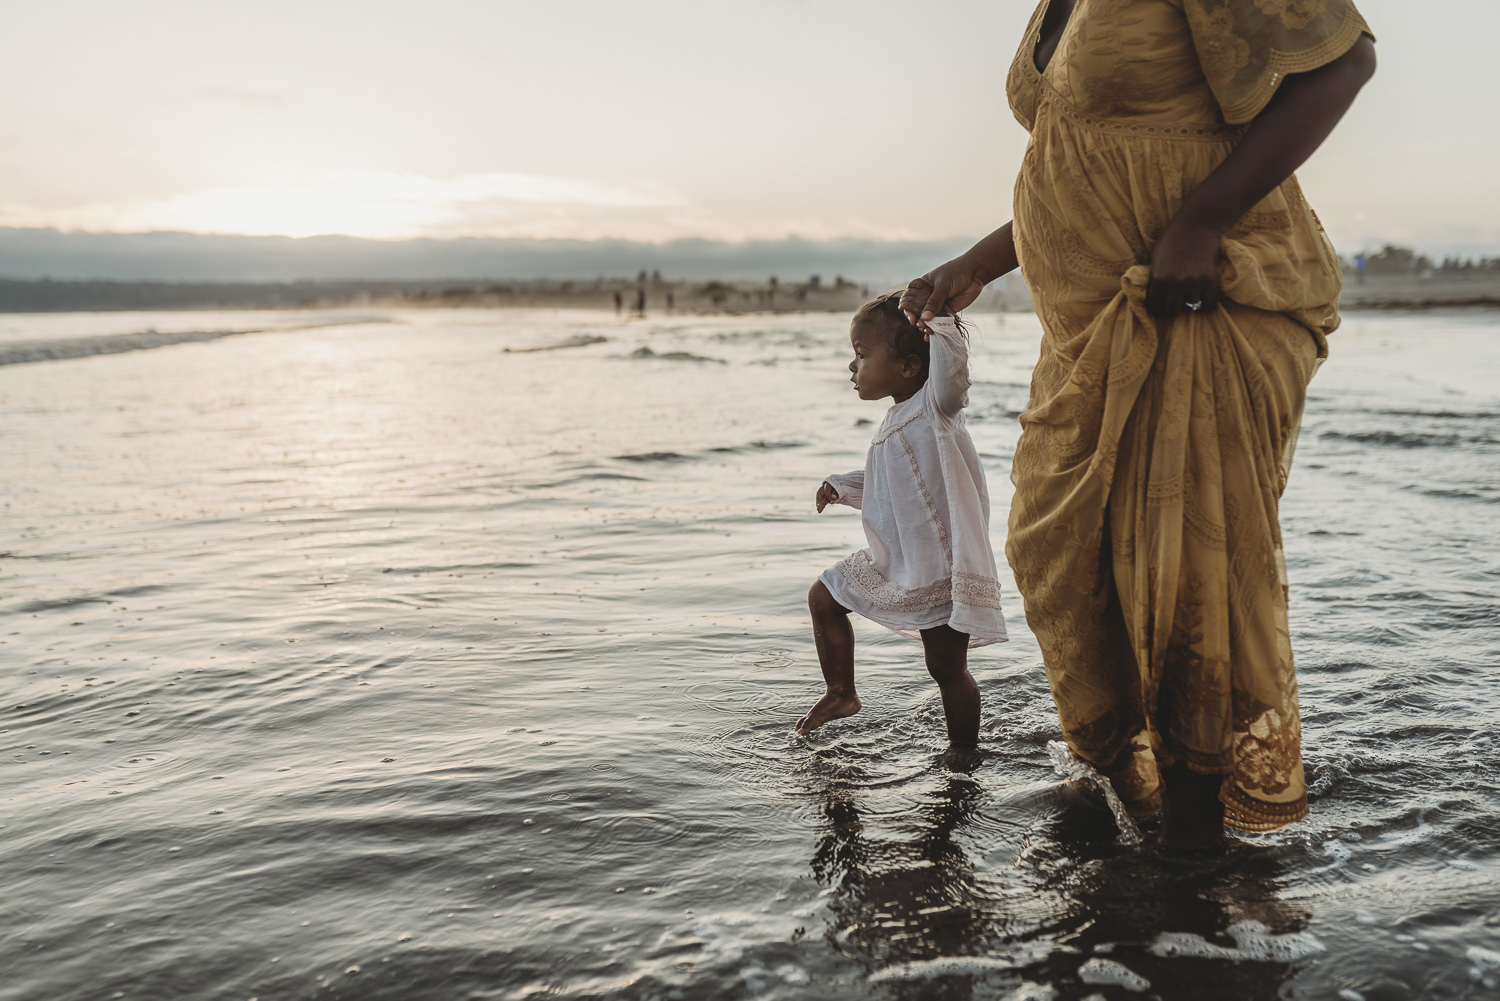 sandiego_family_photography_beach_lifestyle_newborn_maternity-109.jpg